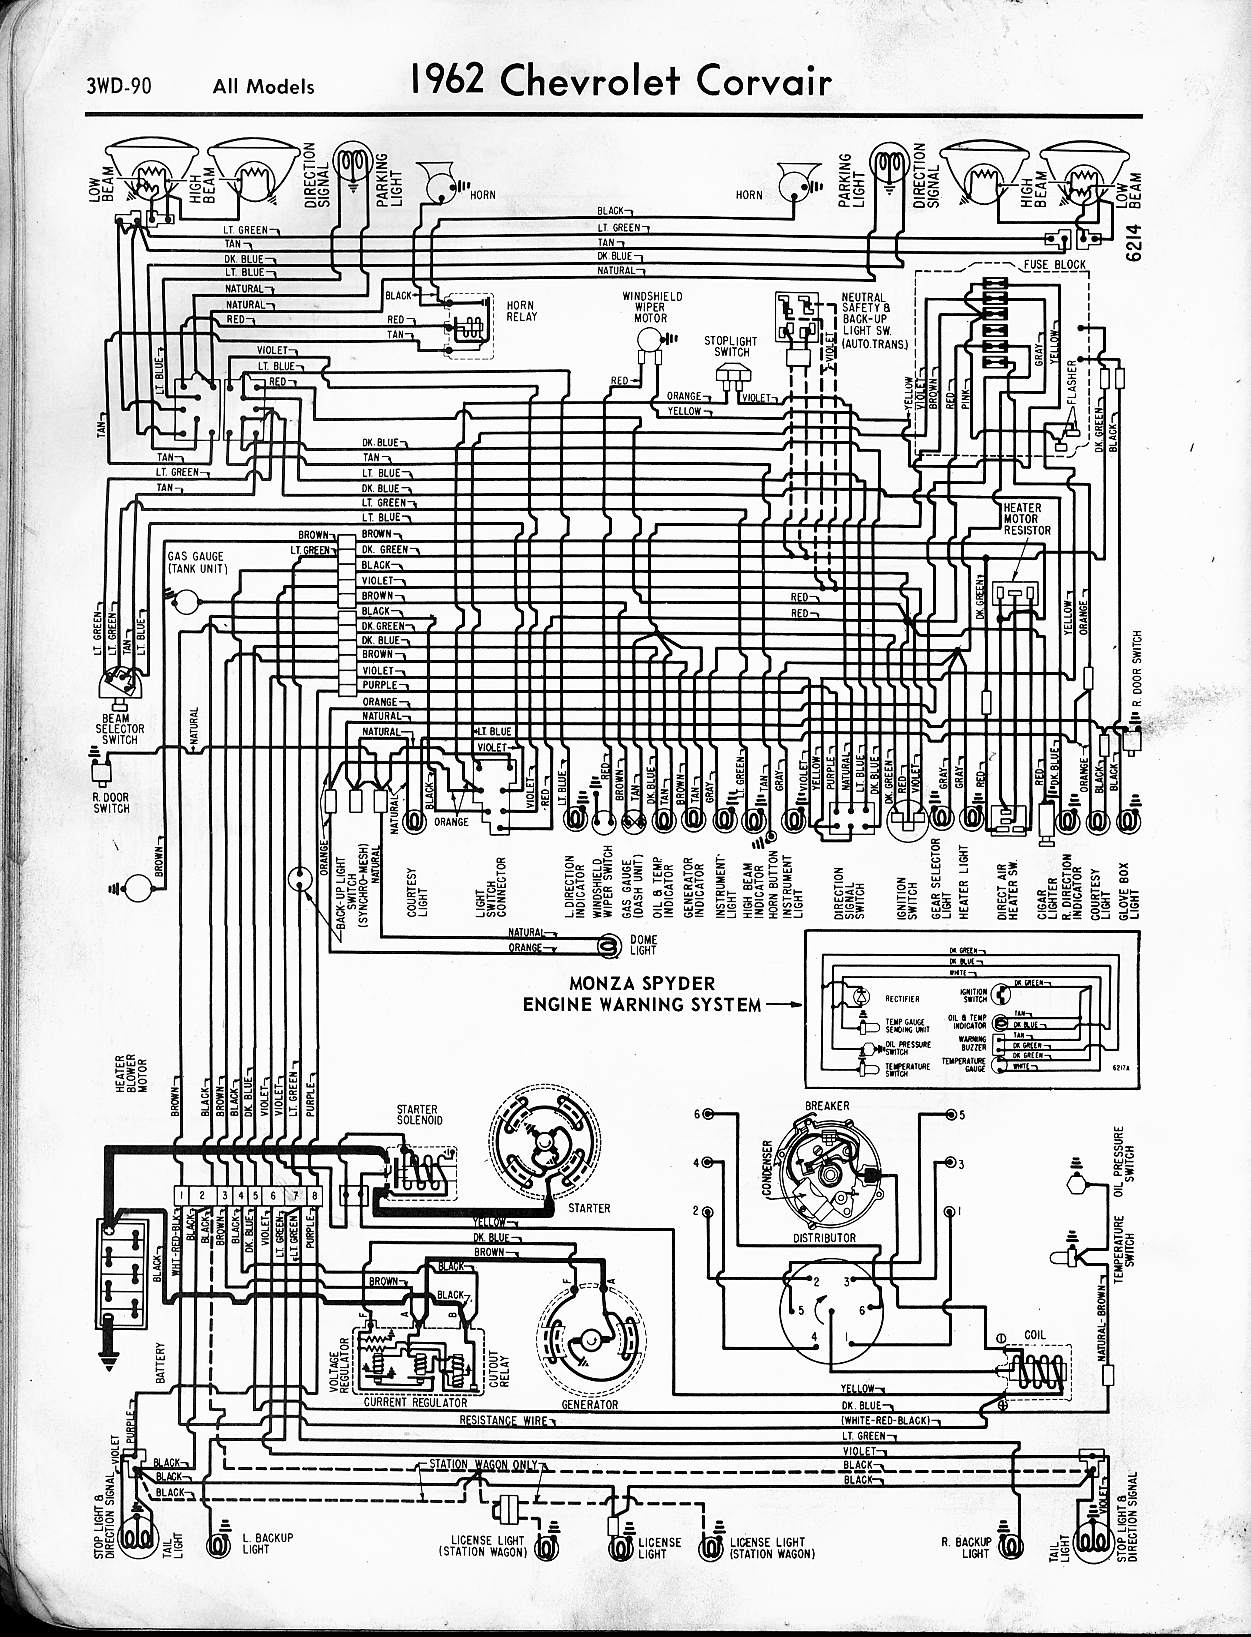 57 - 65 Chevy Wiring Diagrams  Dodge Neon Starter Wiring Diagram on 2000 dodge neon exhaust system diagram, dodge neon rear drum brake diagram, 2001 dodge neon parts diagram, dodge neon door panel diagram,